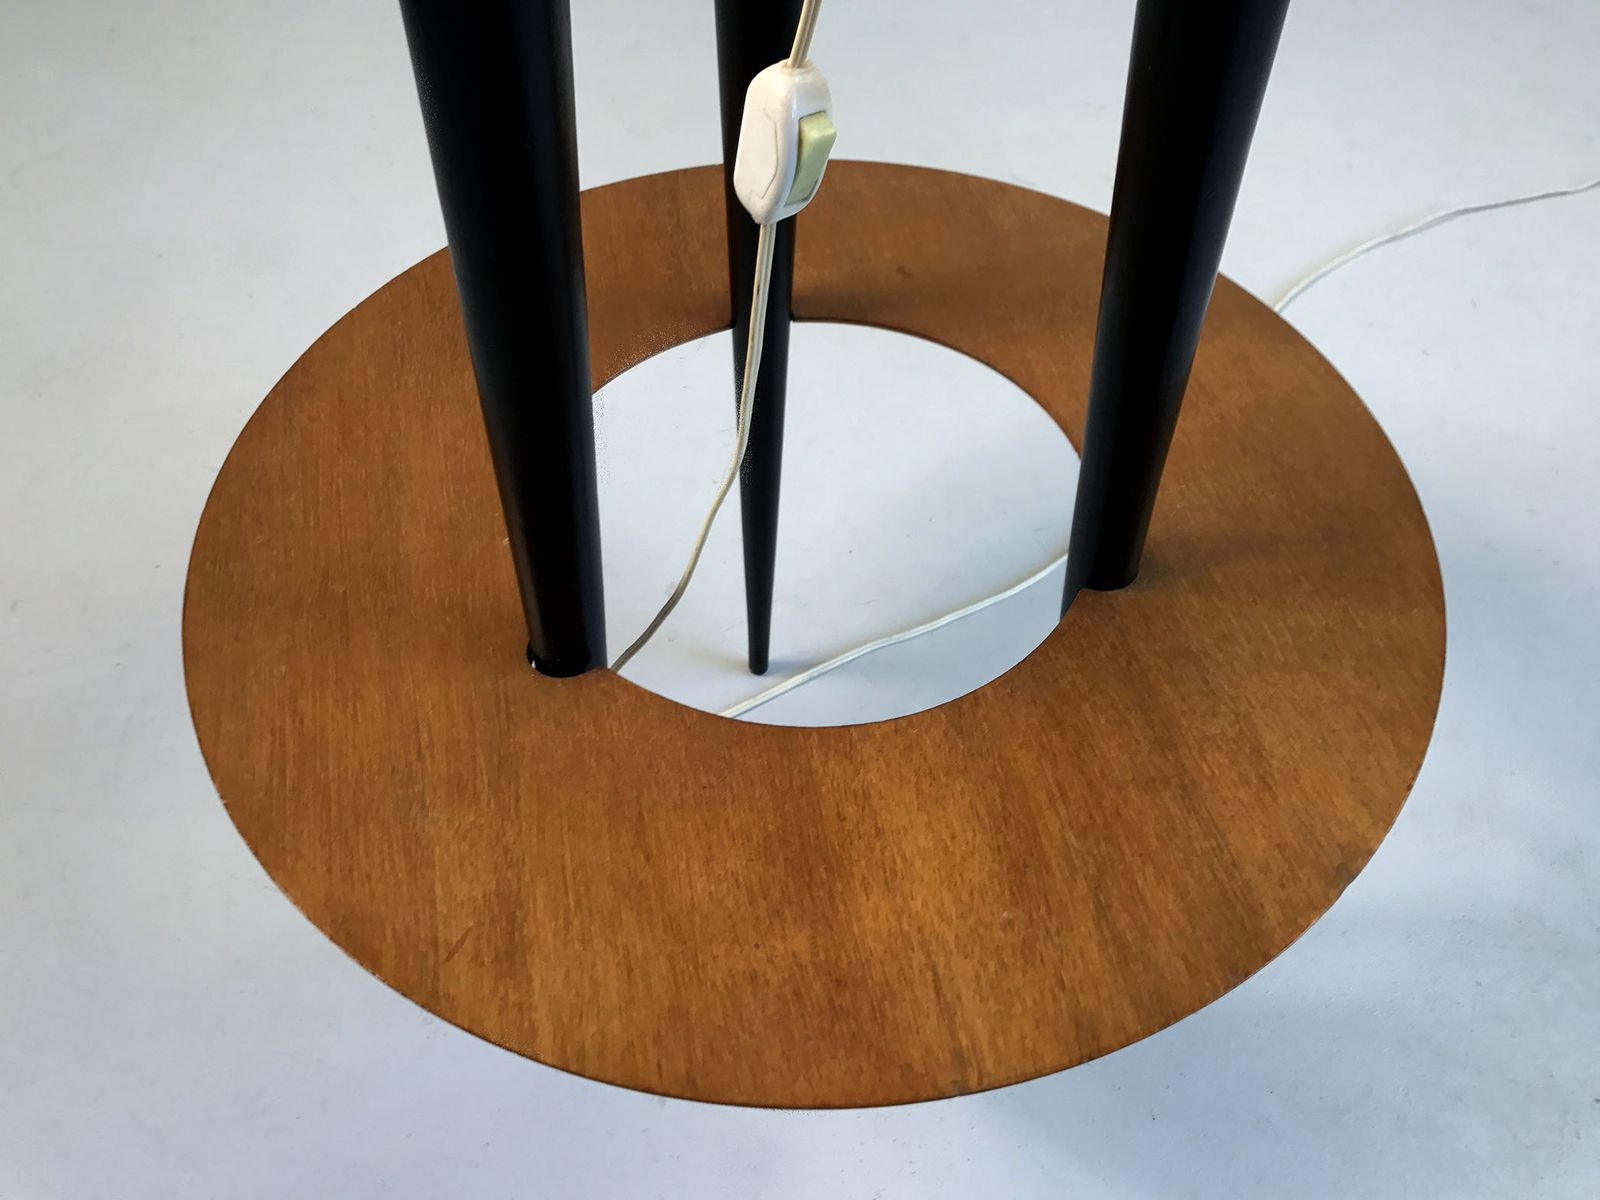 Tripod Floor Lamp by Jean Rispal 1950s for sale at Pamono